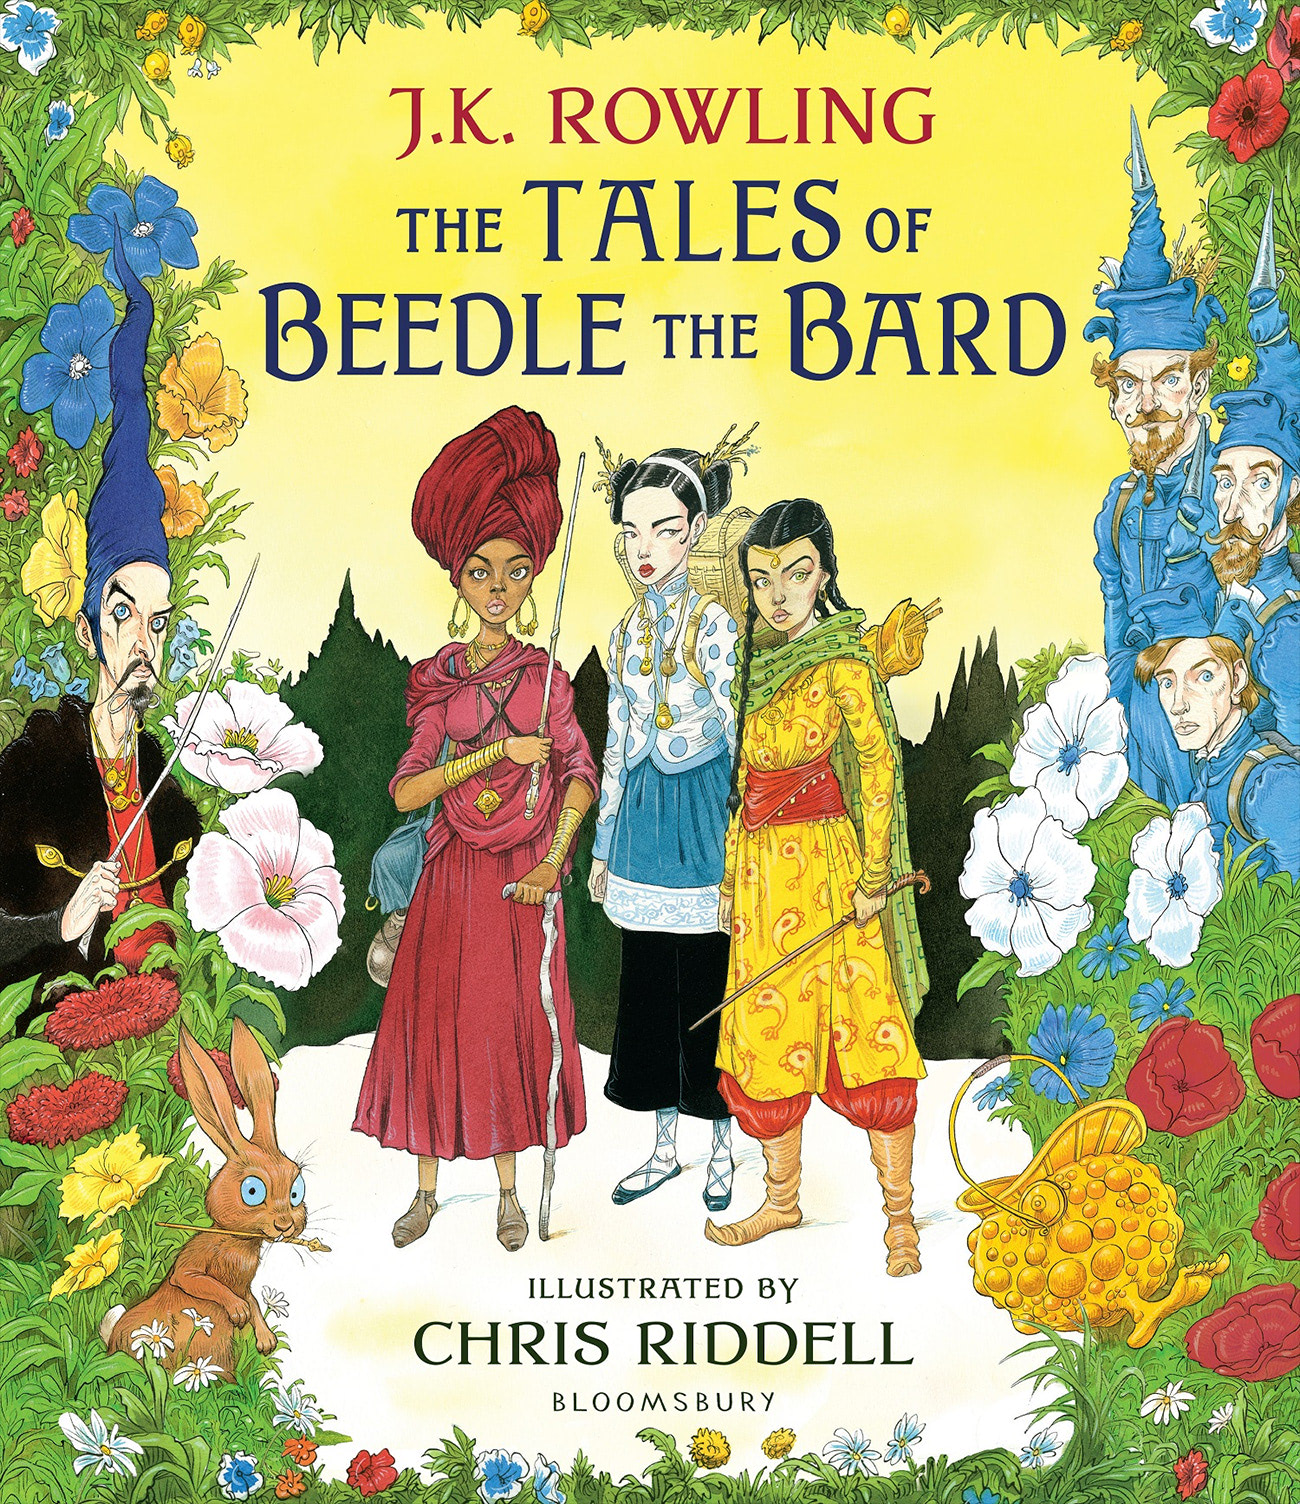 'Beedle the Bard' illustrated edition (Chris Riddell cover)